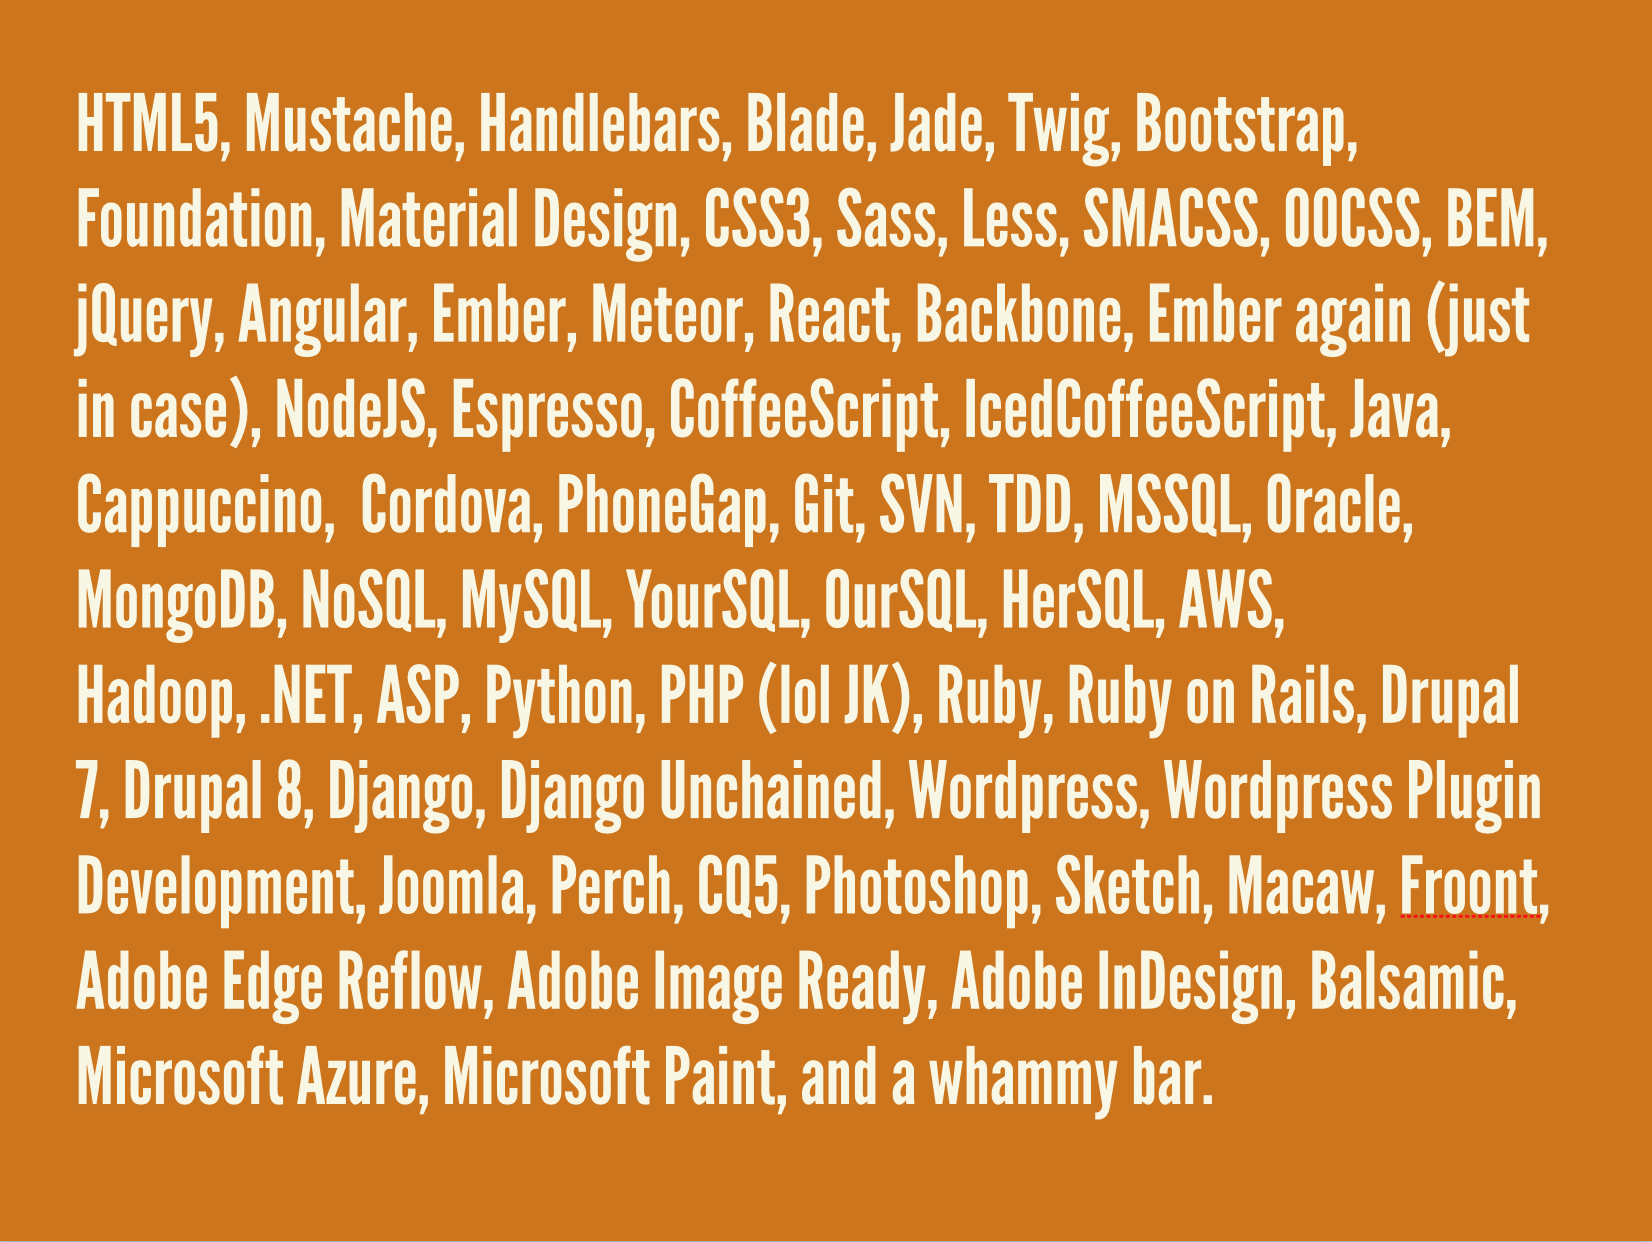 HTML5, Mustache, Handlebars, Blade, Jade, Twig, Bootstrap, Foundation, Material Design, CSS3, Sass, Less, SMACSS, OOCSS, BEM, jQuery, Angular, Ember, Meteor, React, Backbone, Ember again (just in case), NodeJS, Espresso, CoffeeScript, IcedCoffeeScript, Java, Cappuccino, Cordova, PhoneGap, Git, SVN, TDD, MSSQL, Oracle, MongoDB, NoSQL, MySQL, YourSQL, OurSQL, HerSQL, AWS, Hadoop, .NET, ASP, Python, PHP (lol JK), Ruby, Ruby on Rails, Drupal 7, Drupal 8, Django, Django Unchained, WordPress, WordPress Plugin Development, Joomla, Perch, CQ5, Photoshop, Sketch, Macaw, Froont, Adobe Edge Reflow, Adobe Image Ready, Adobe InDesign, Balsamic, Microsoft Azure, Microsoft Paint, and a whammy bar.